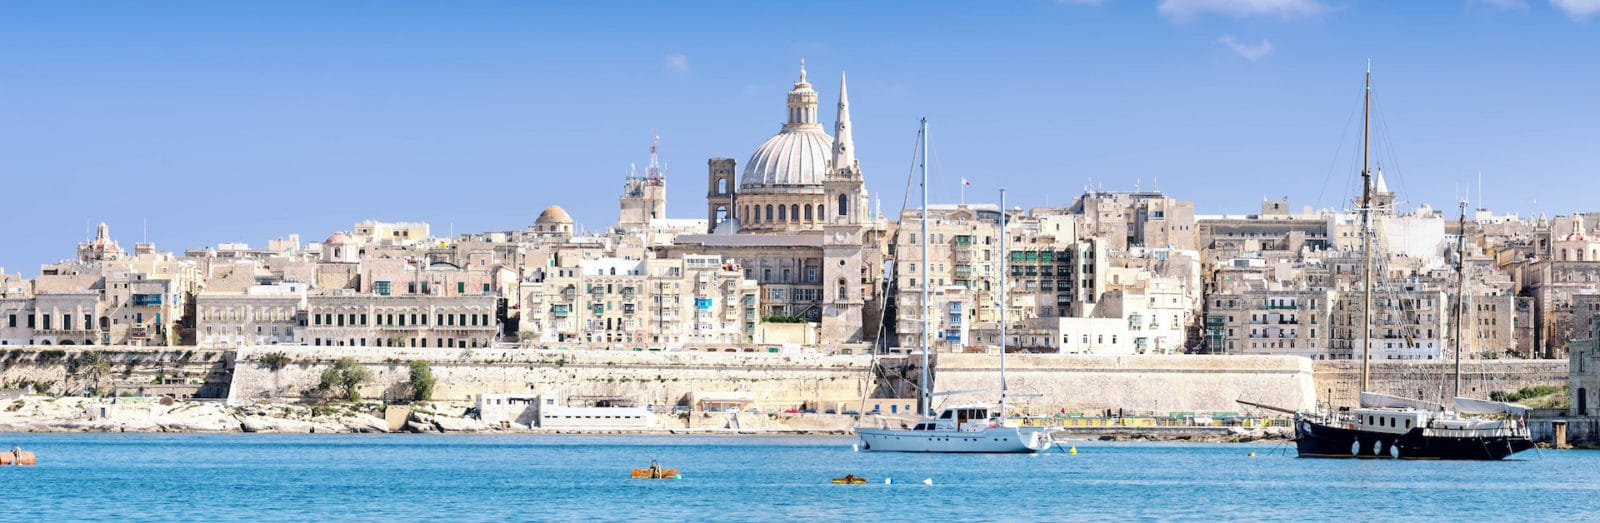 Shore Excursion in Valletta (Malta)